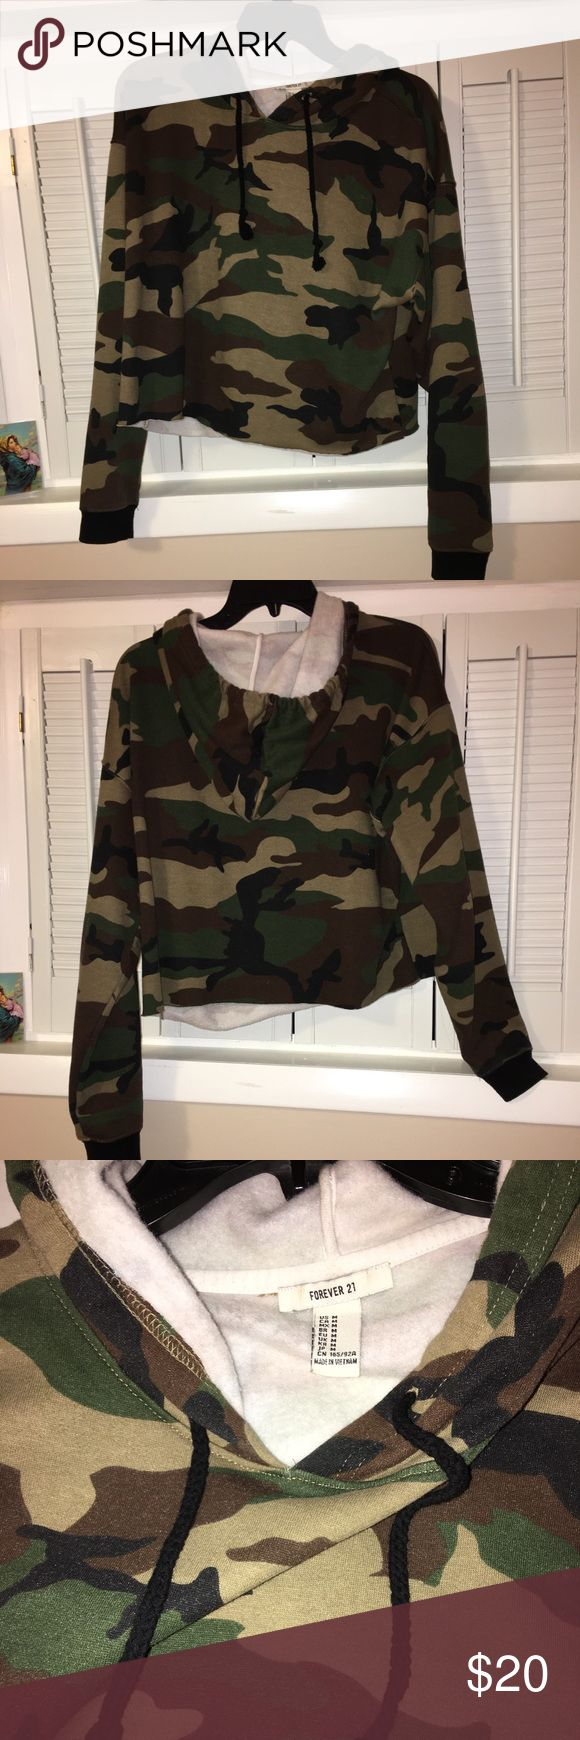 Forever21 army crop top sweat shirt Forever21 army crop top sweat shirt hoodie; worn once! Excellent condition size medium. no trades Forever 21 Tops Crop Tops